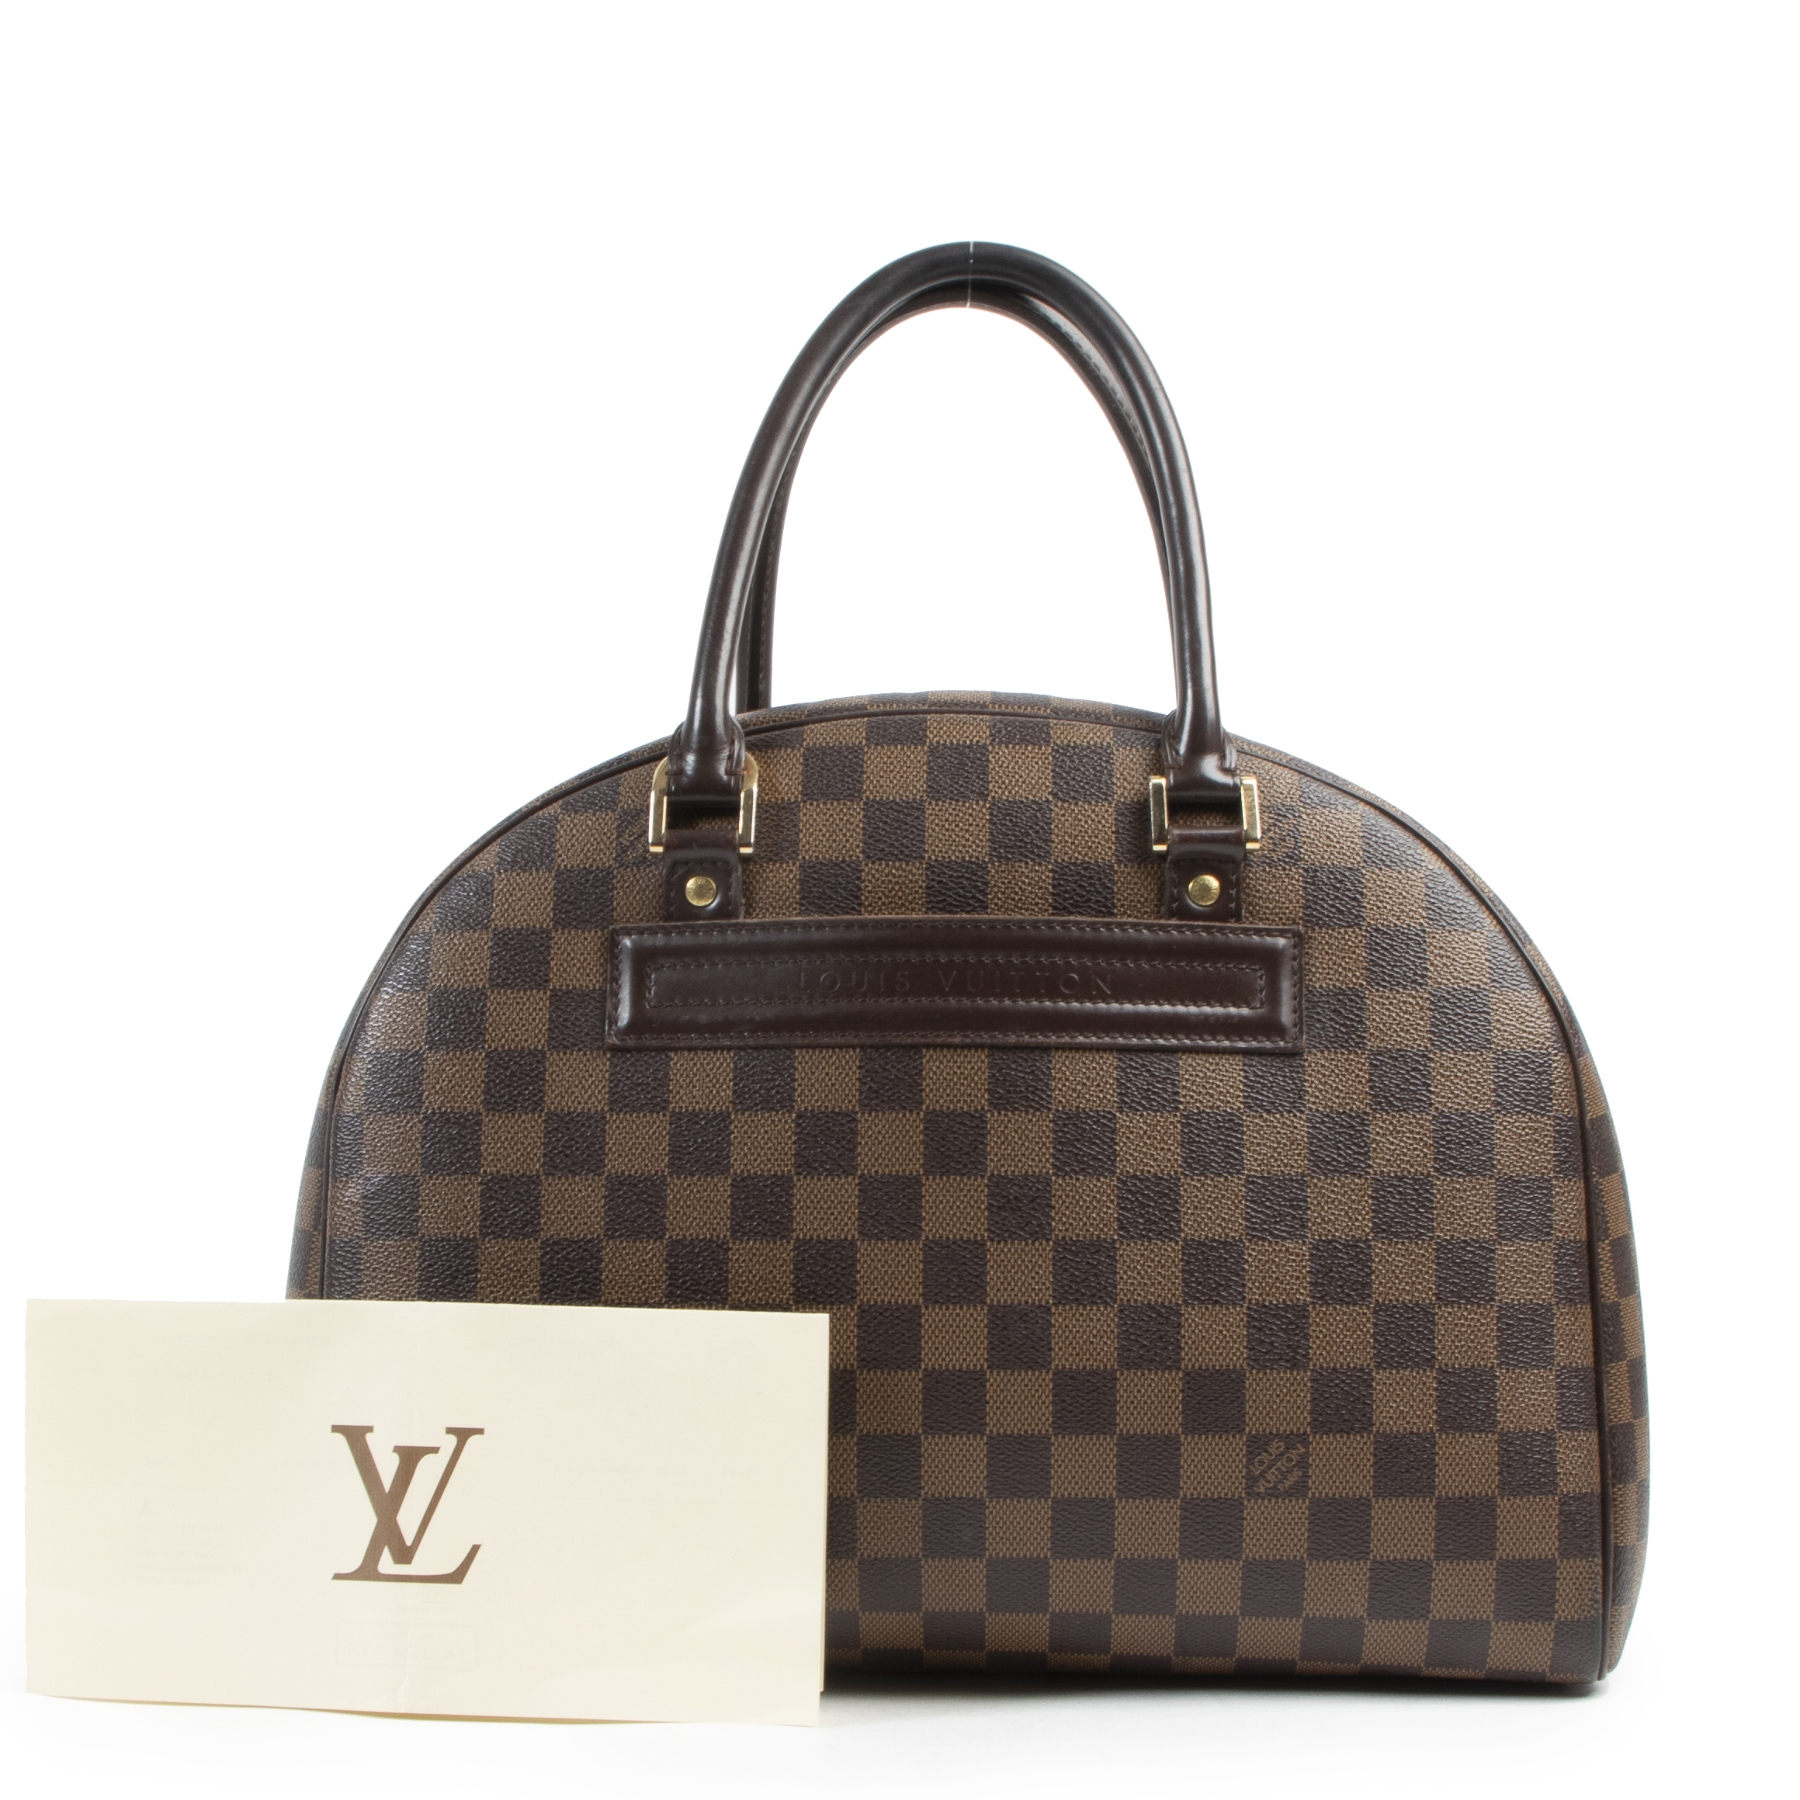 Louis Vuitton Damier Ebene Nolita Bag